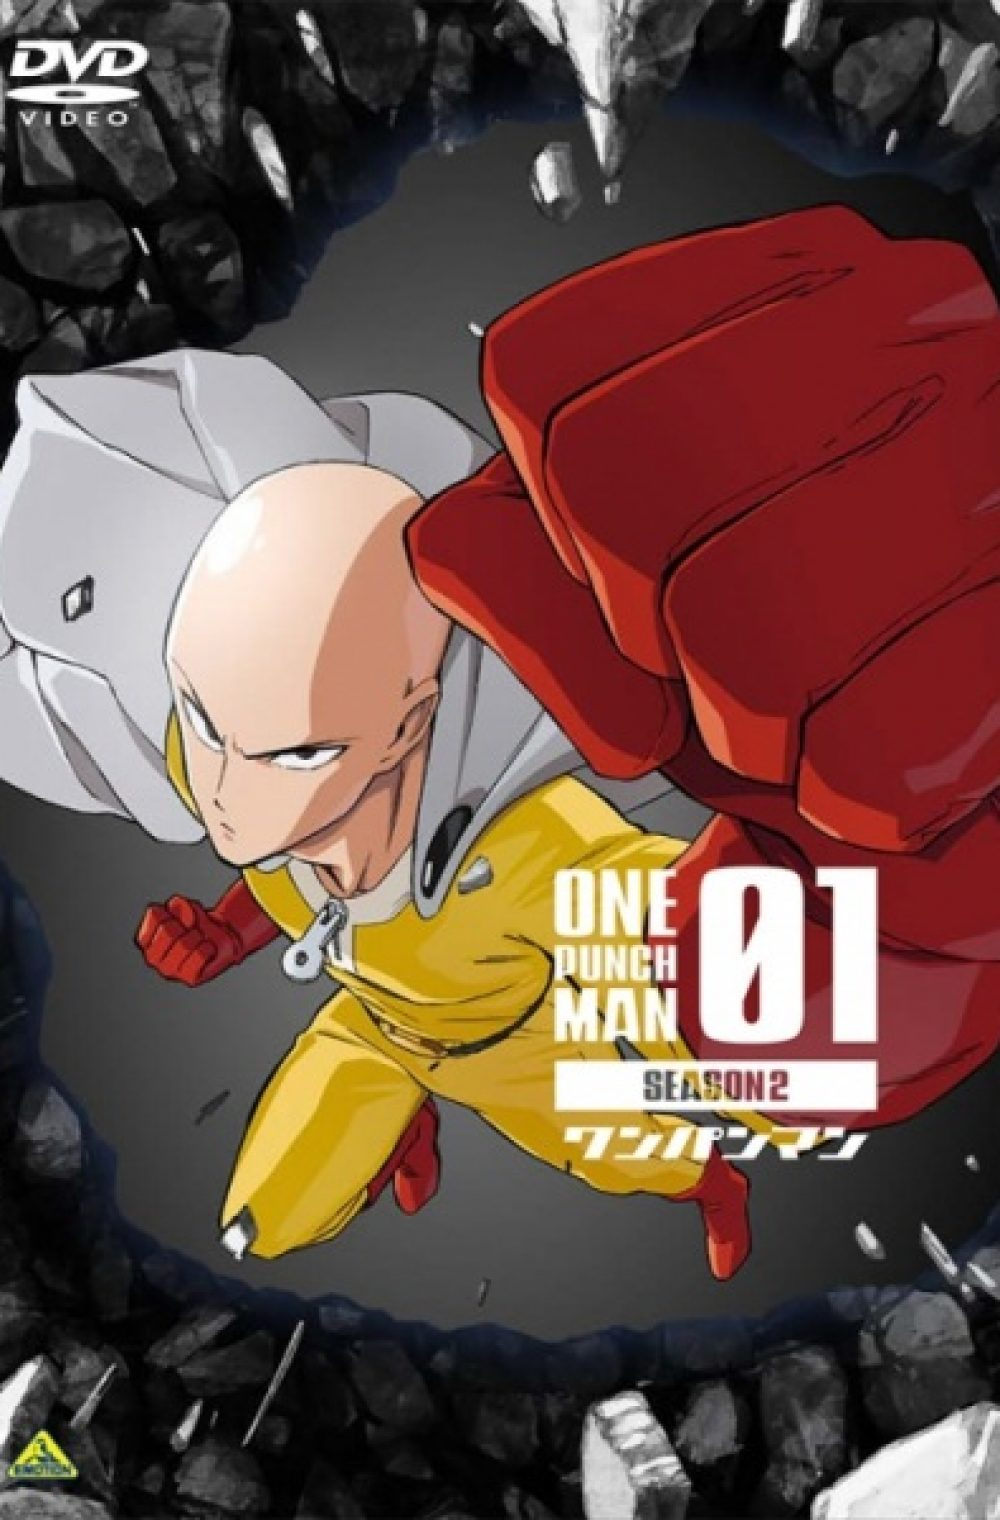 One Punch Man Season 2 OVA